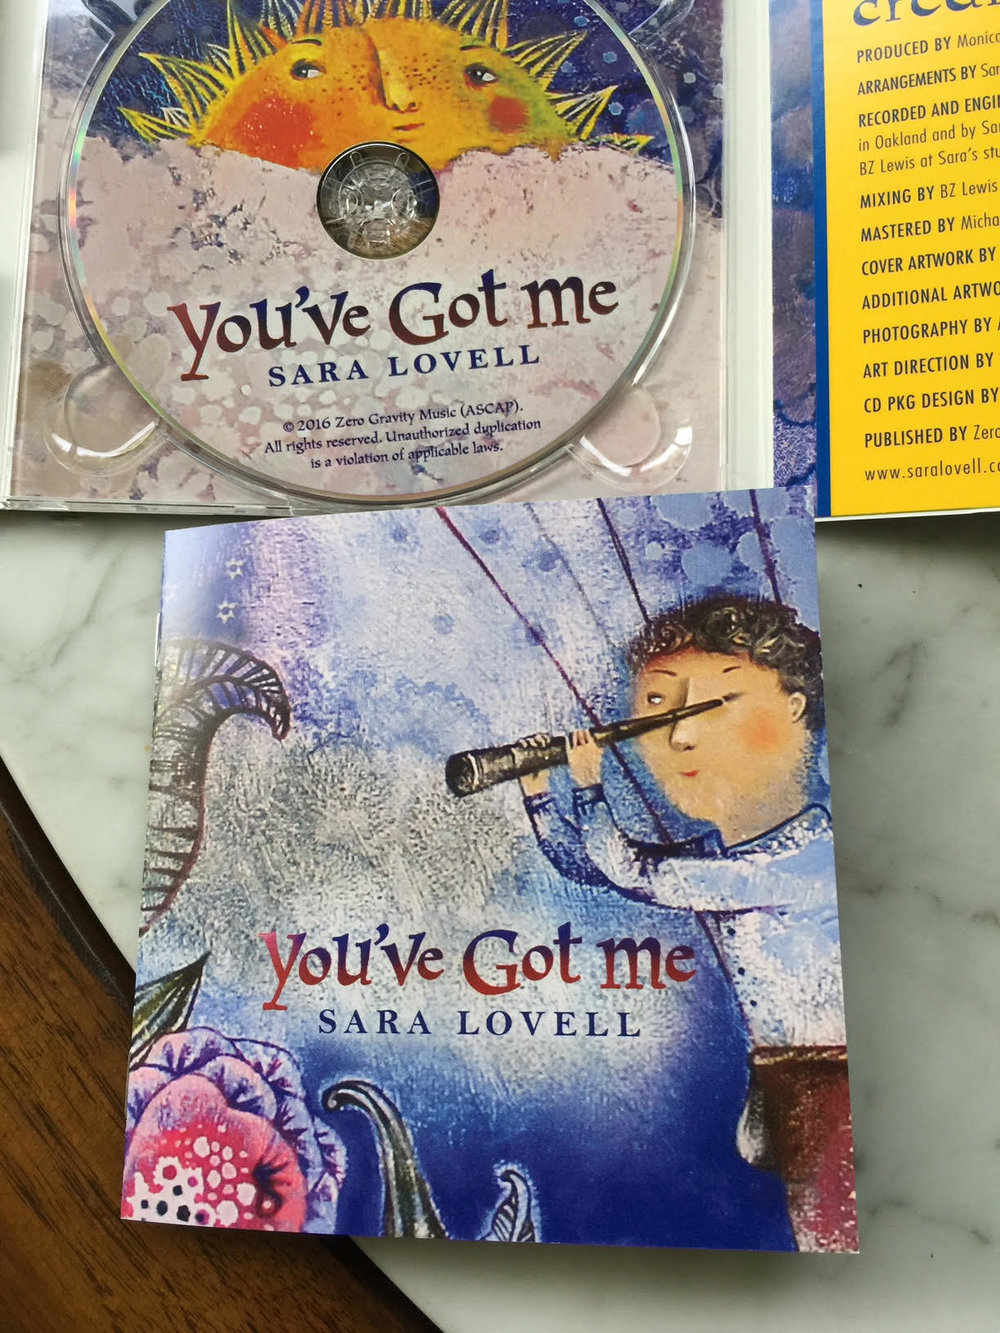 You've got me CD and lyrics cover.jpg